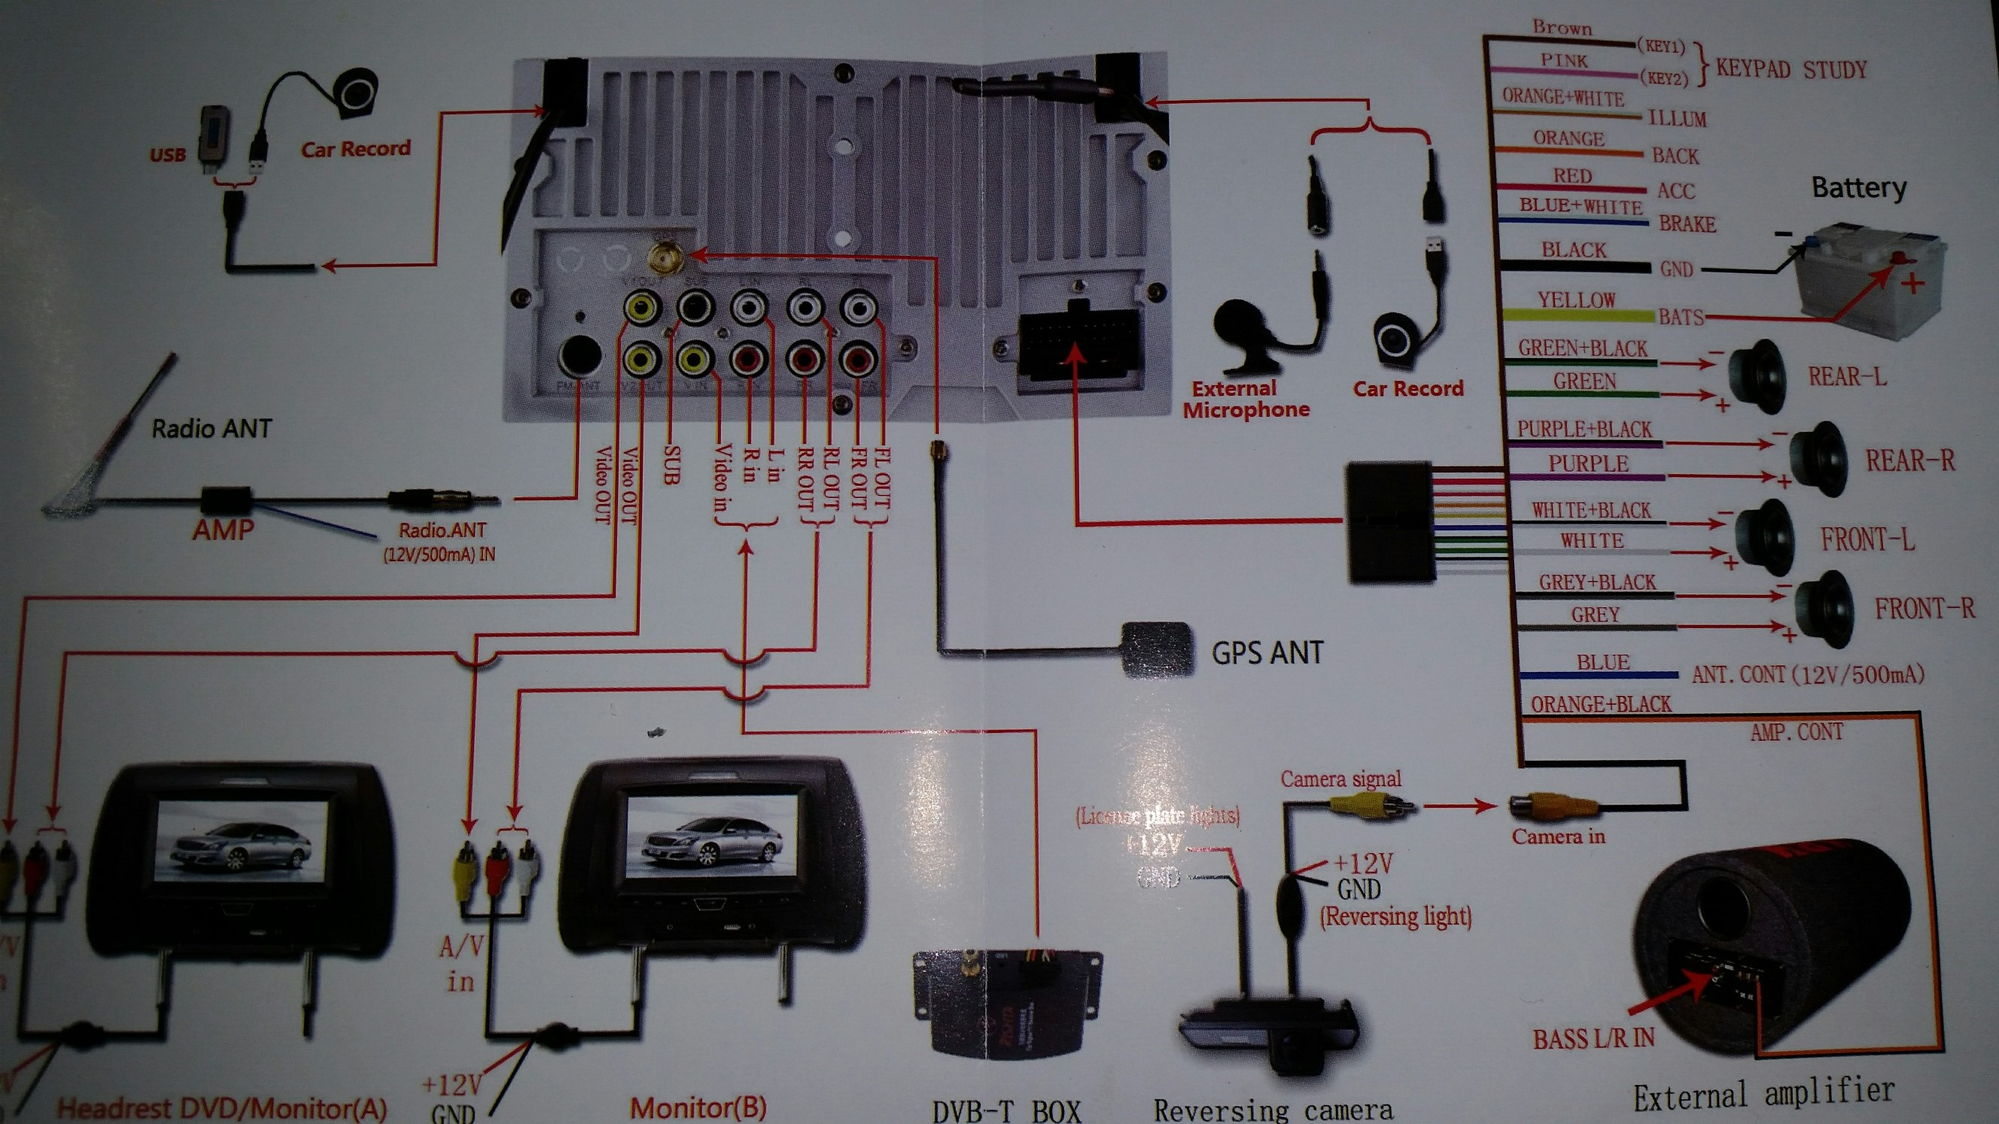 2007 Acura Tl Wiring Diagram Custom Project 2011 Tsx Engine Base Advice On Double Din Upgrade